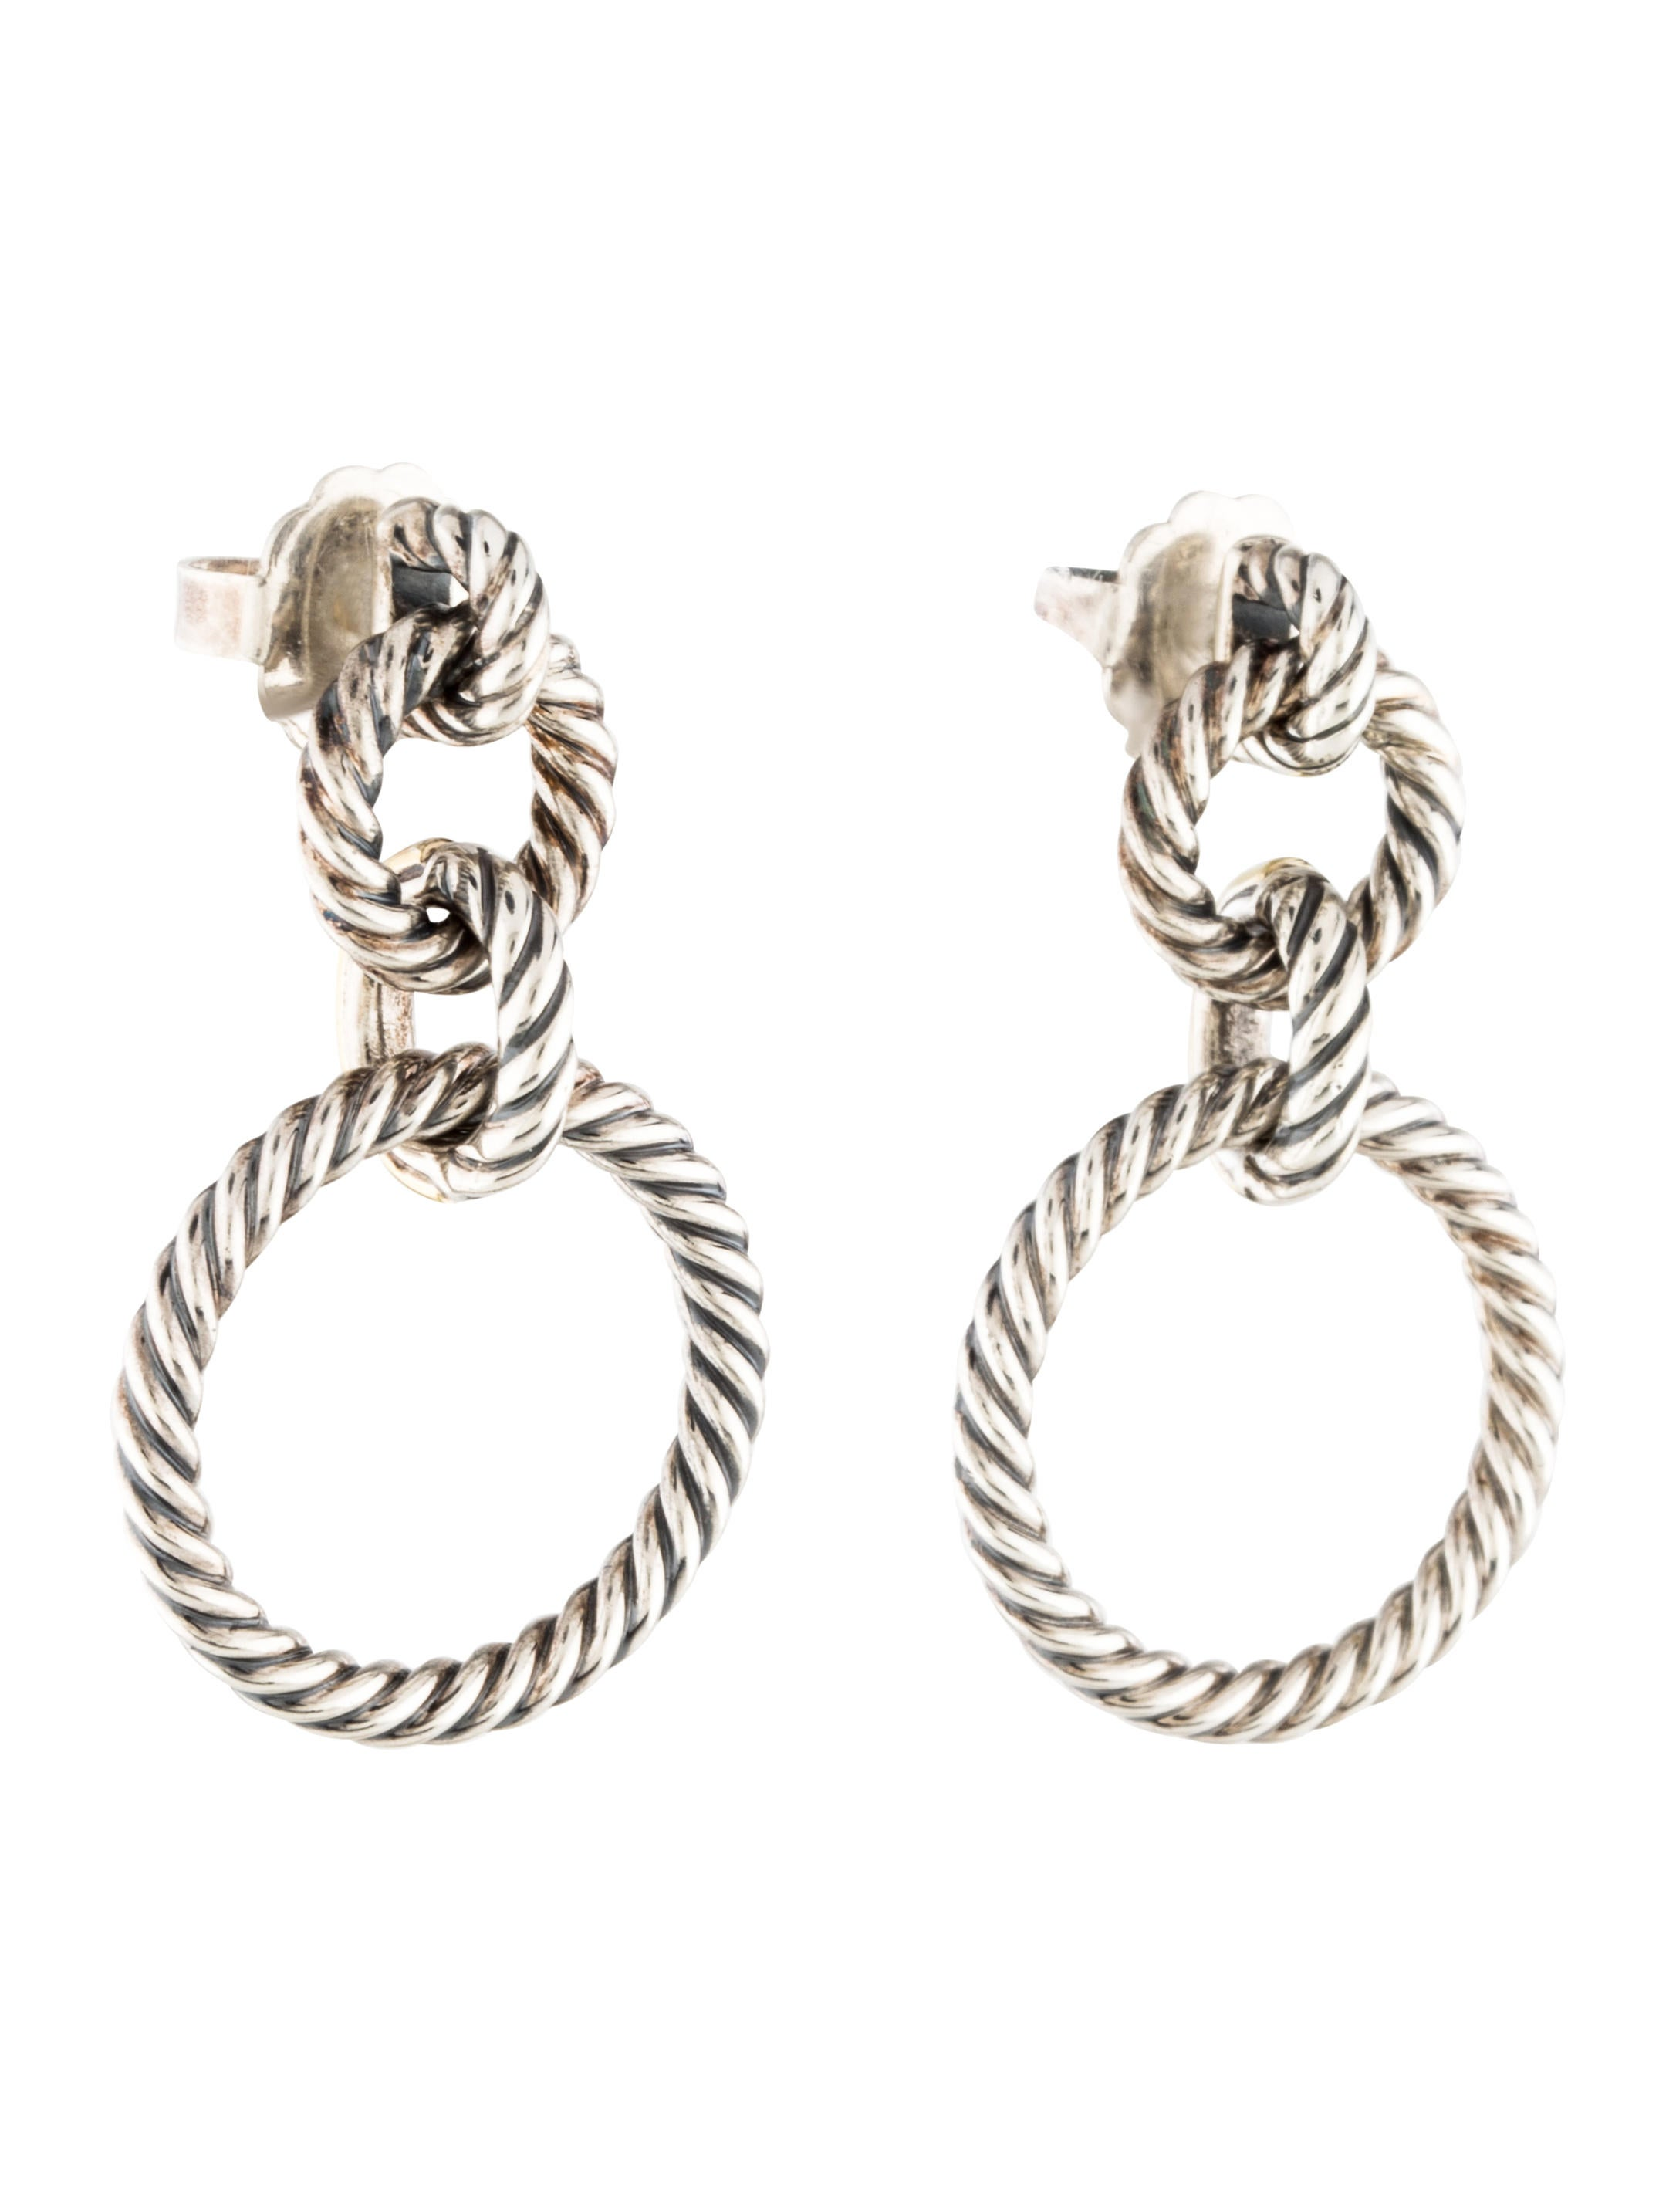 david yurman earrings sale david yurman doorknocker drop earrings earrings 3399